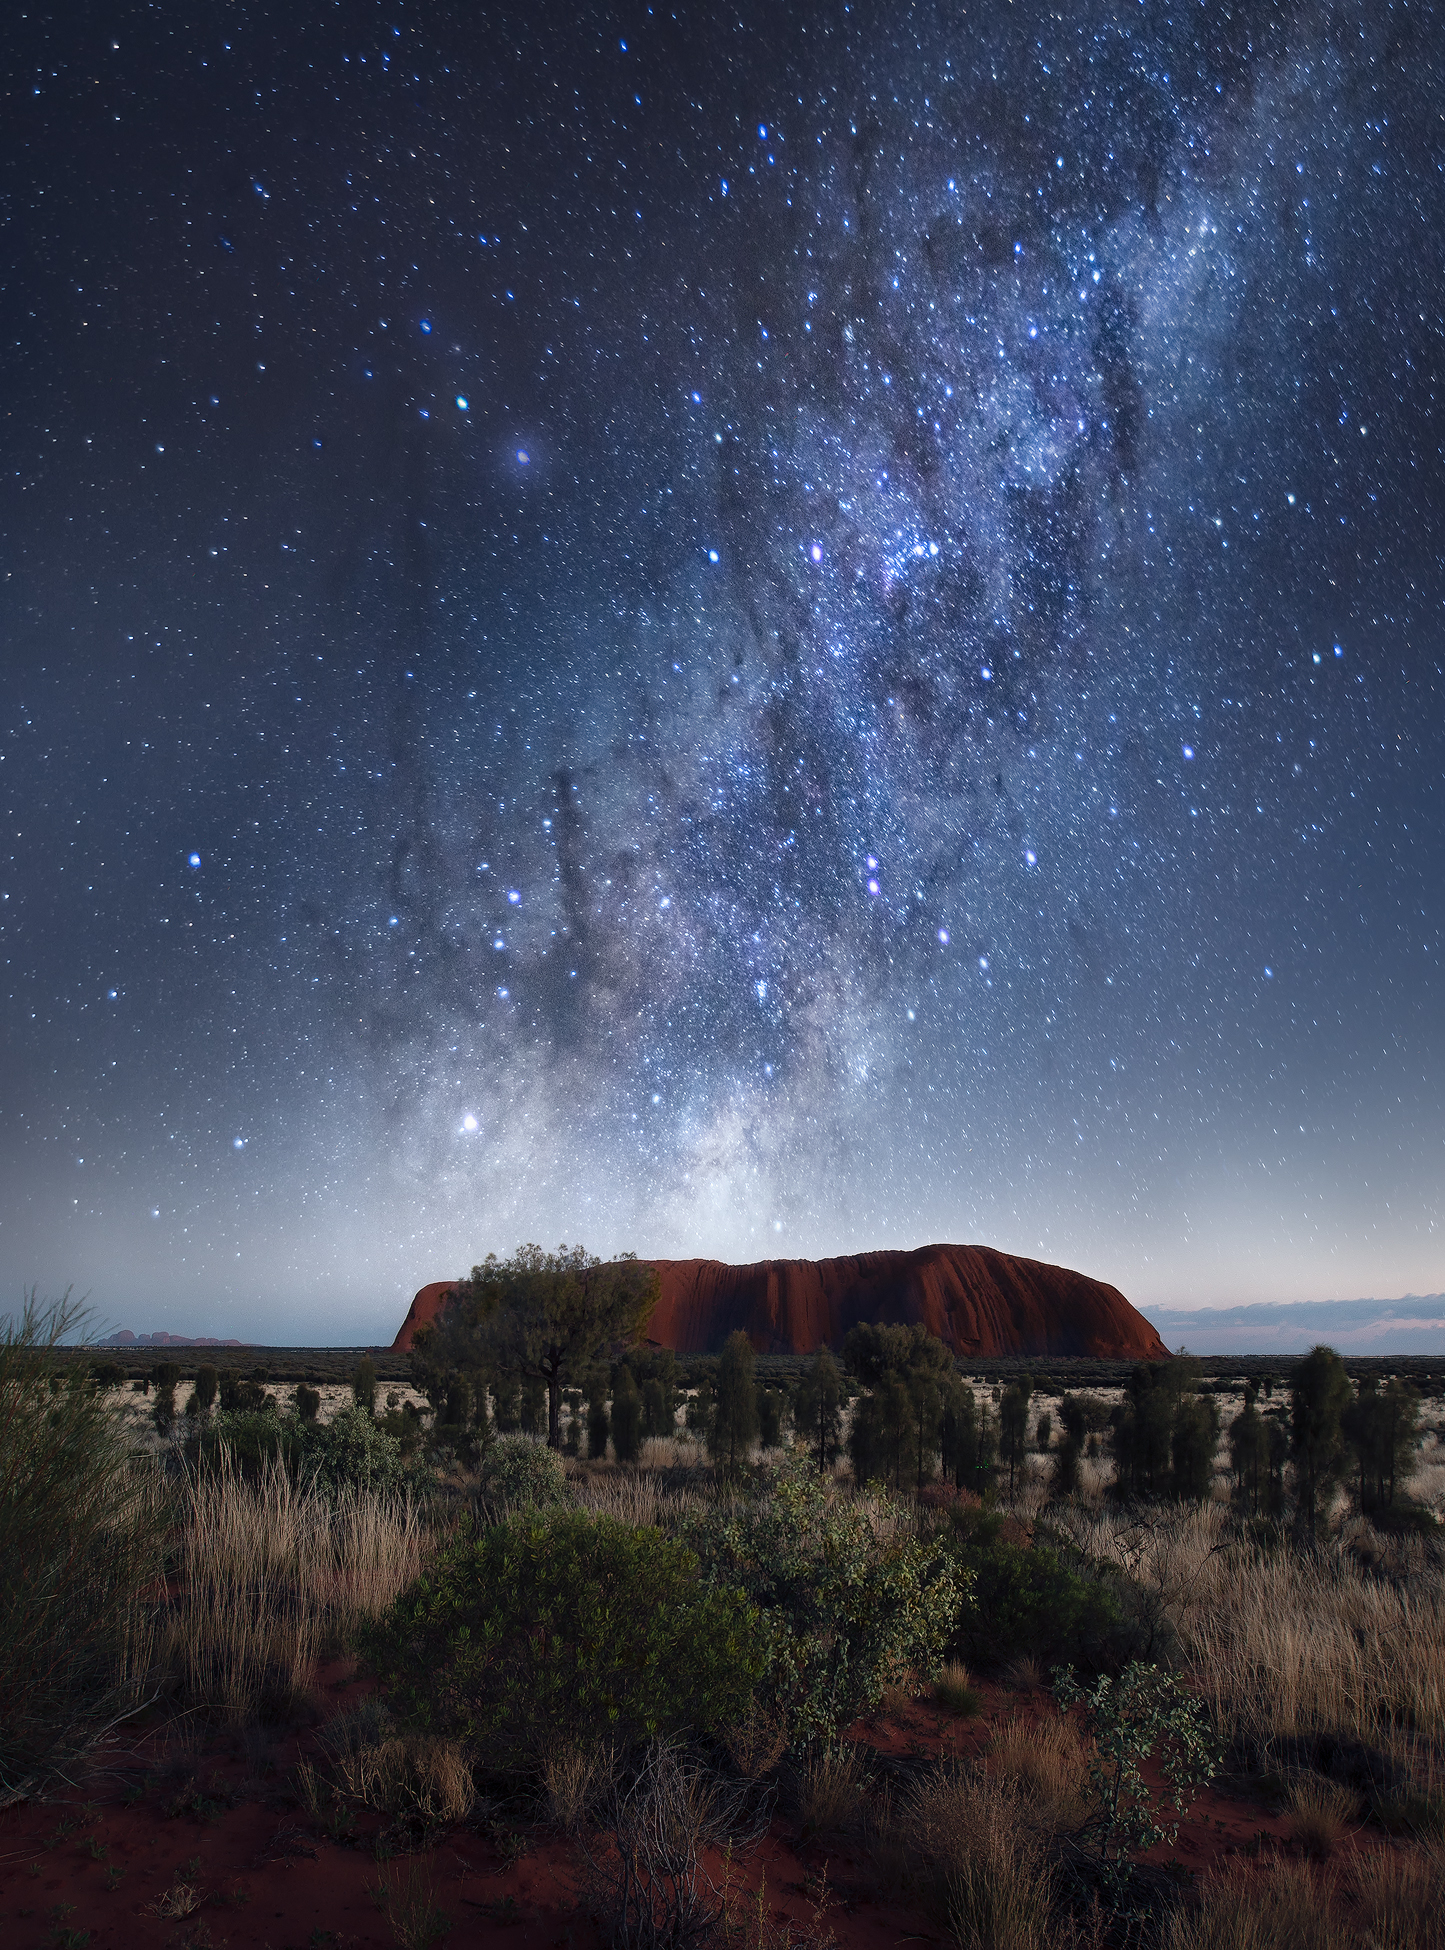 Stargazing at Ayers Rock, Uluru under the stars with view of the Milky Way core | We Are Raw Photography Tours